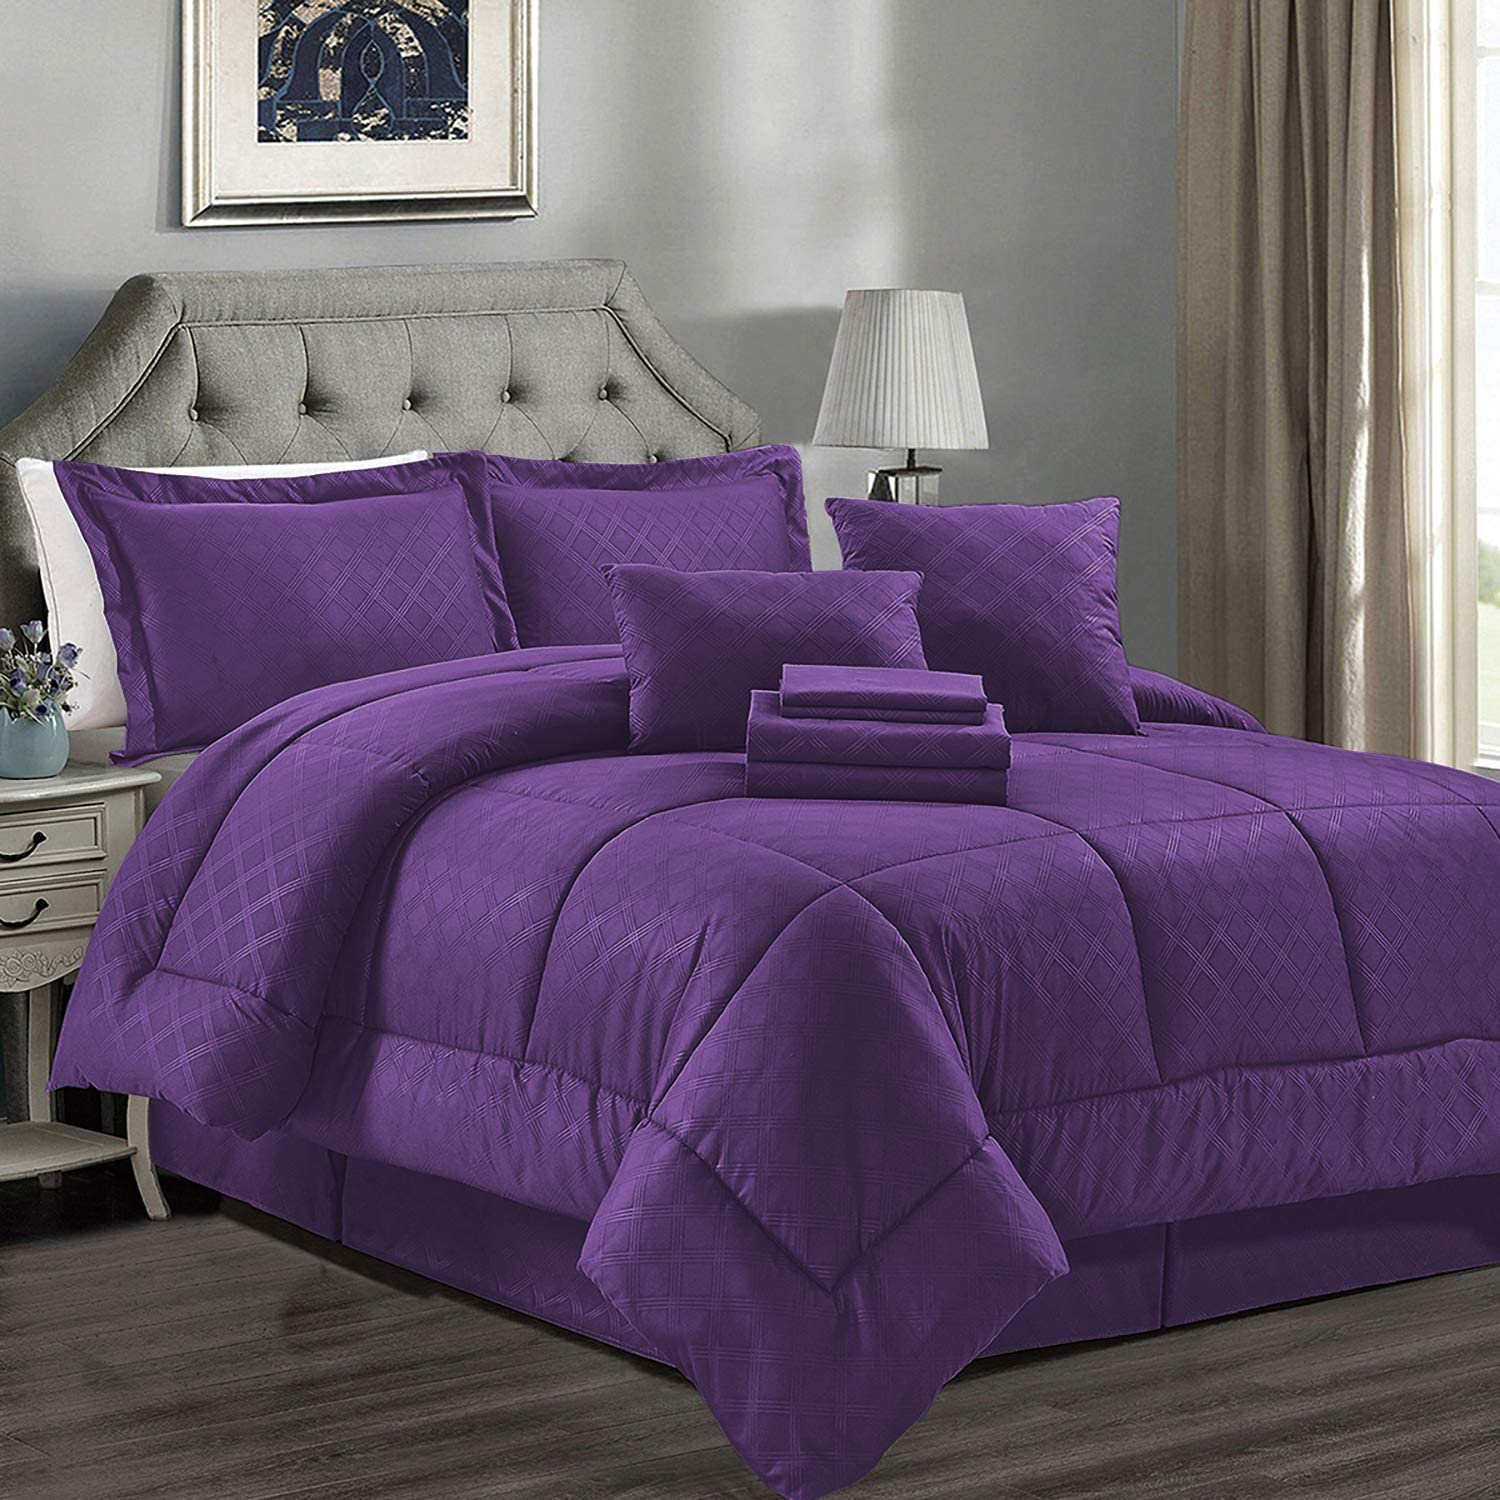 JML Comforter Set, Microfiber Bedding Comforter Sets with Shams - Luxury Solid Color Quilted Embroidered Pattern, Perfect for Any Bed Room or Guest Room (Purple, Twin)